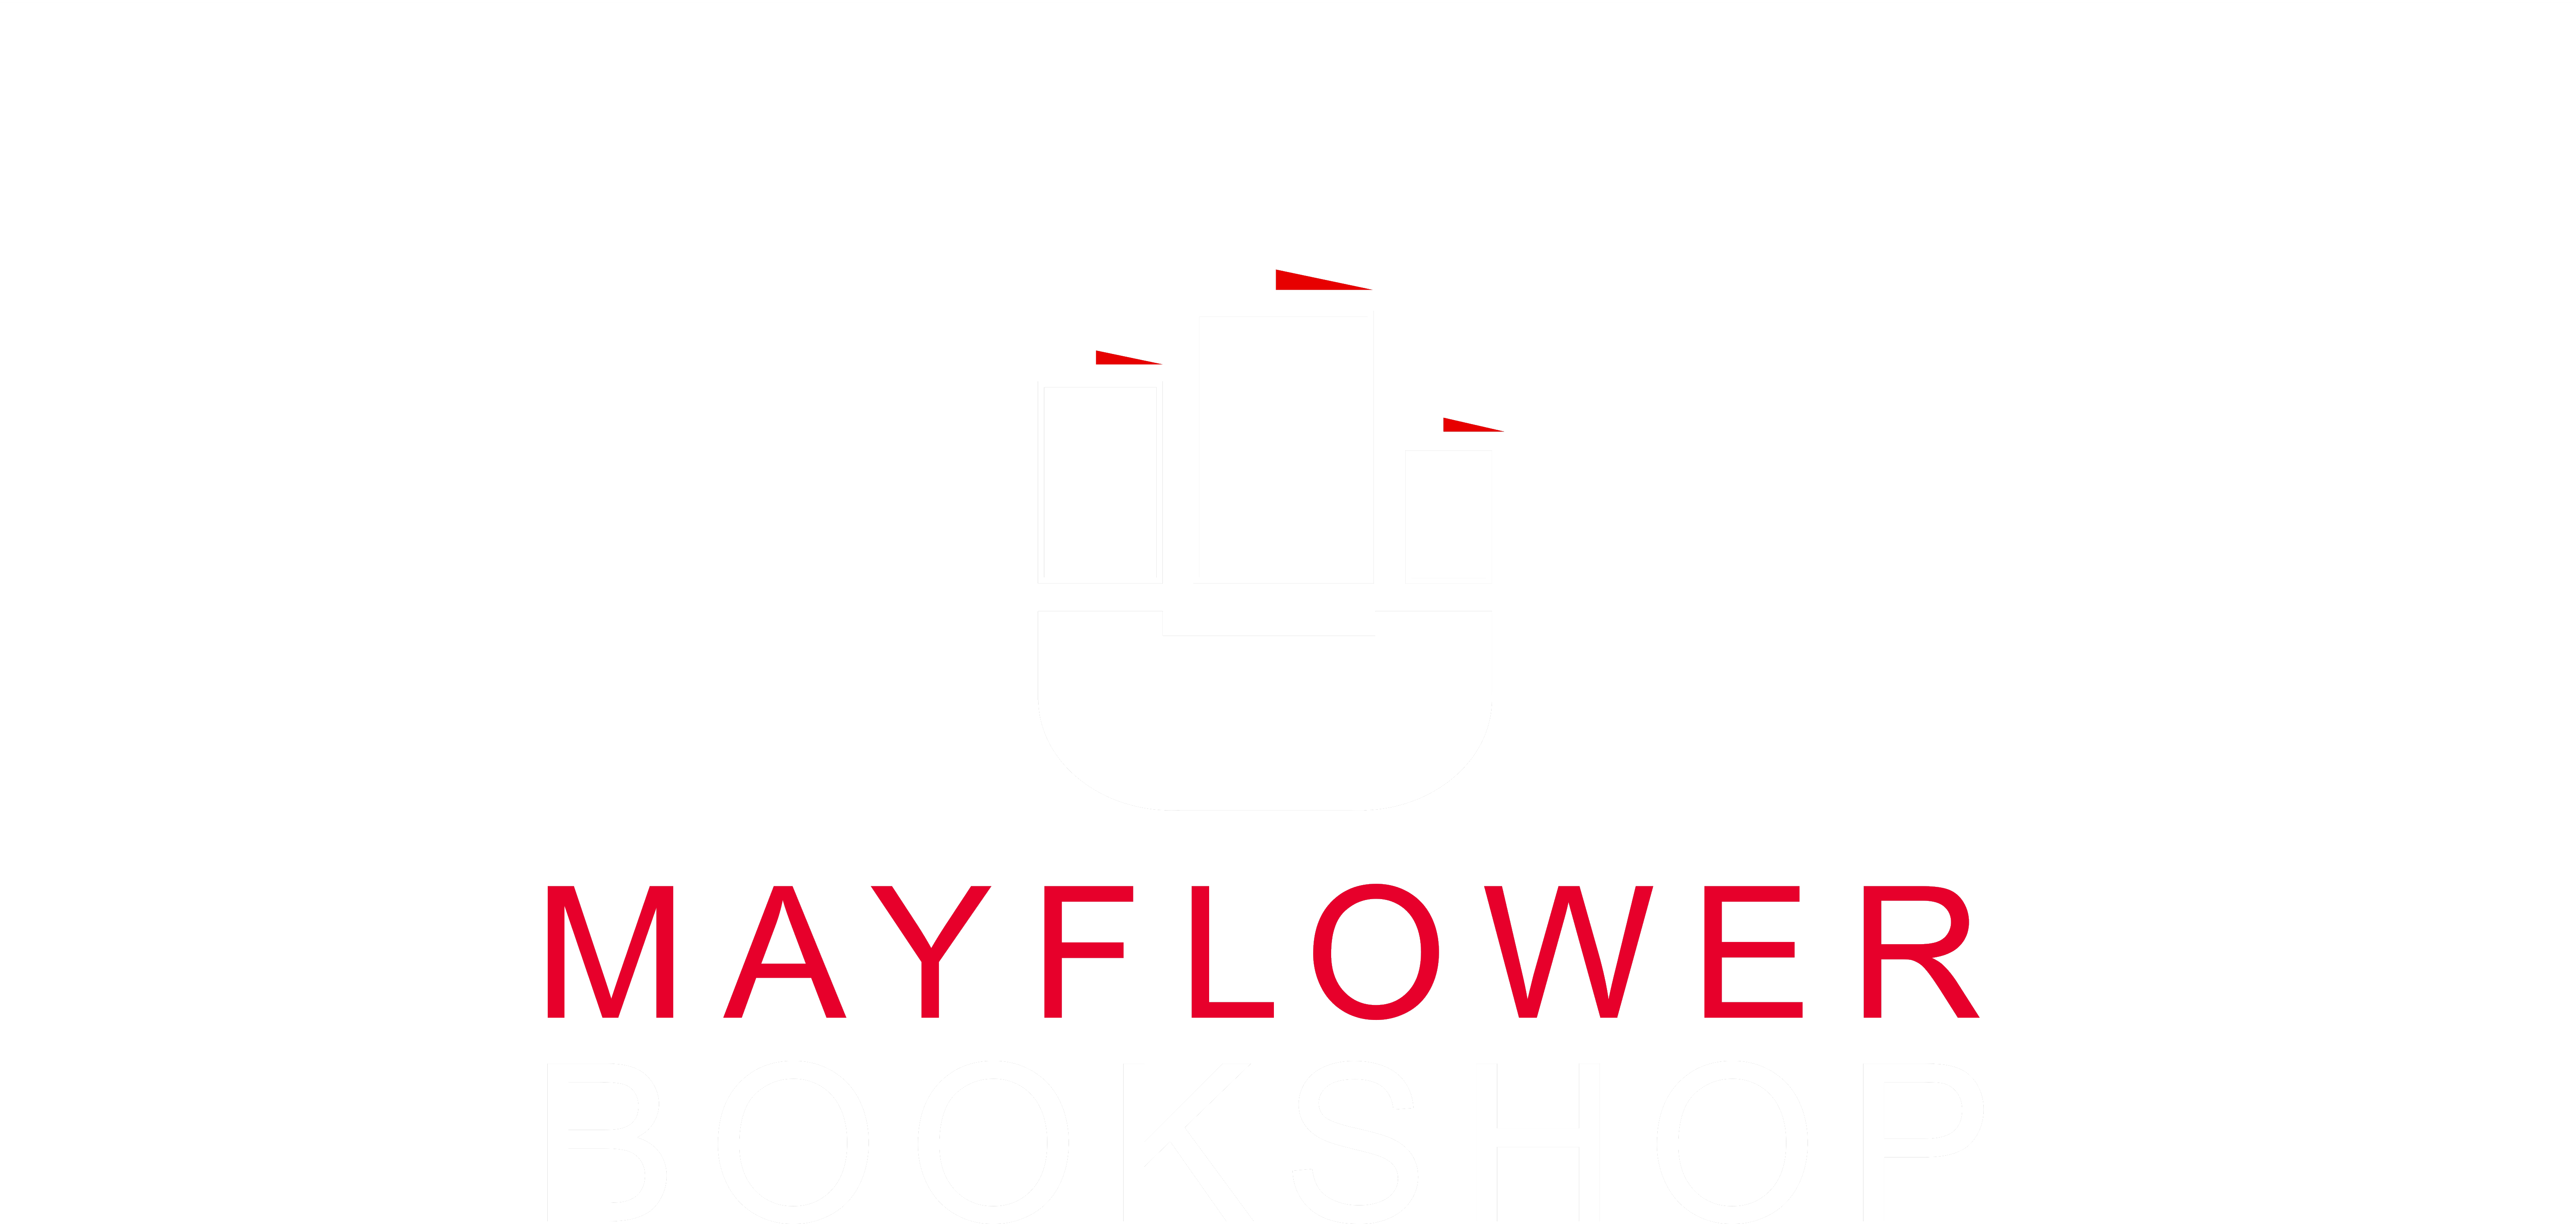 Mayflower Bookshop